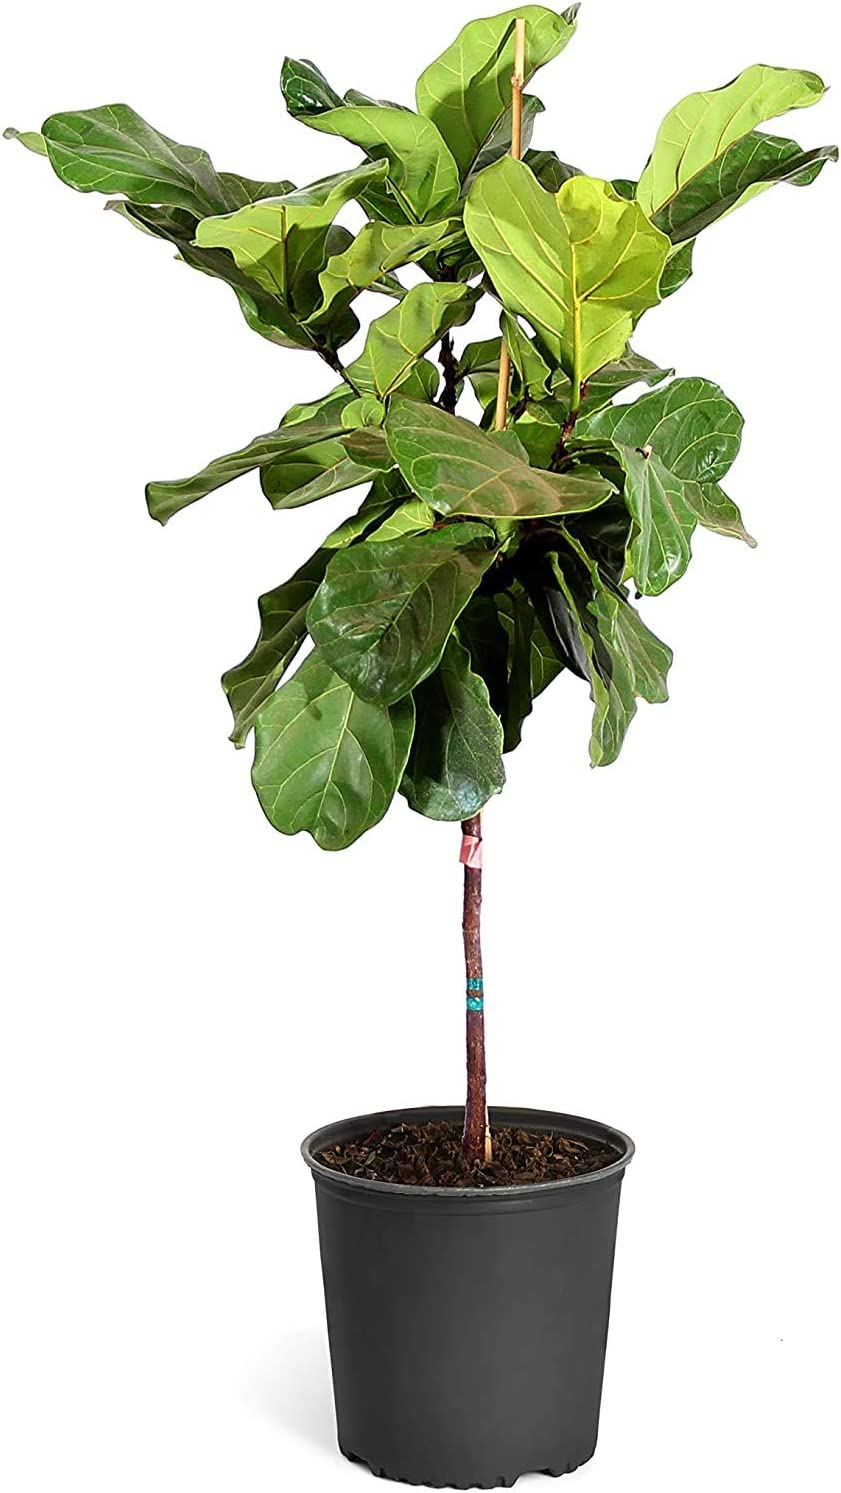 Fiddle Leaf Fig - The Soldering Attention brand Most Indoor Popular Tall Tree Live